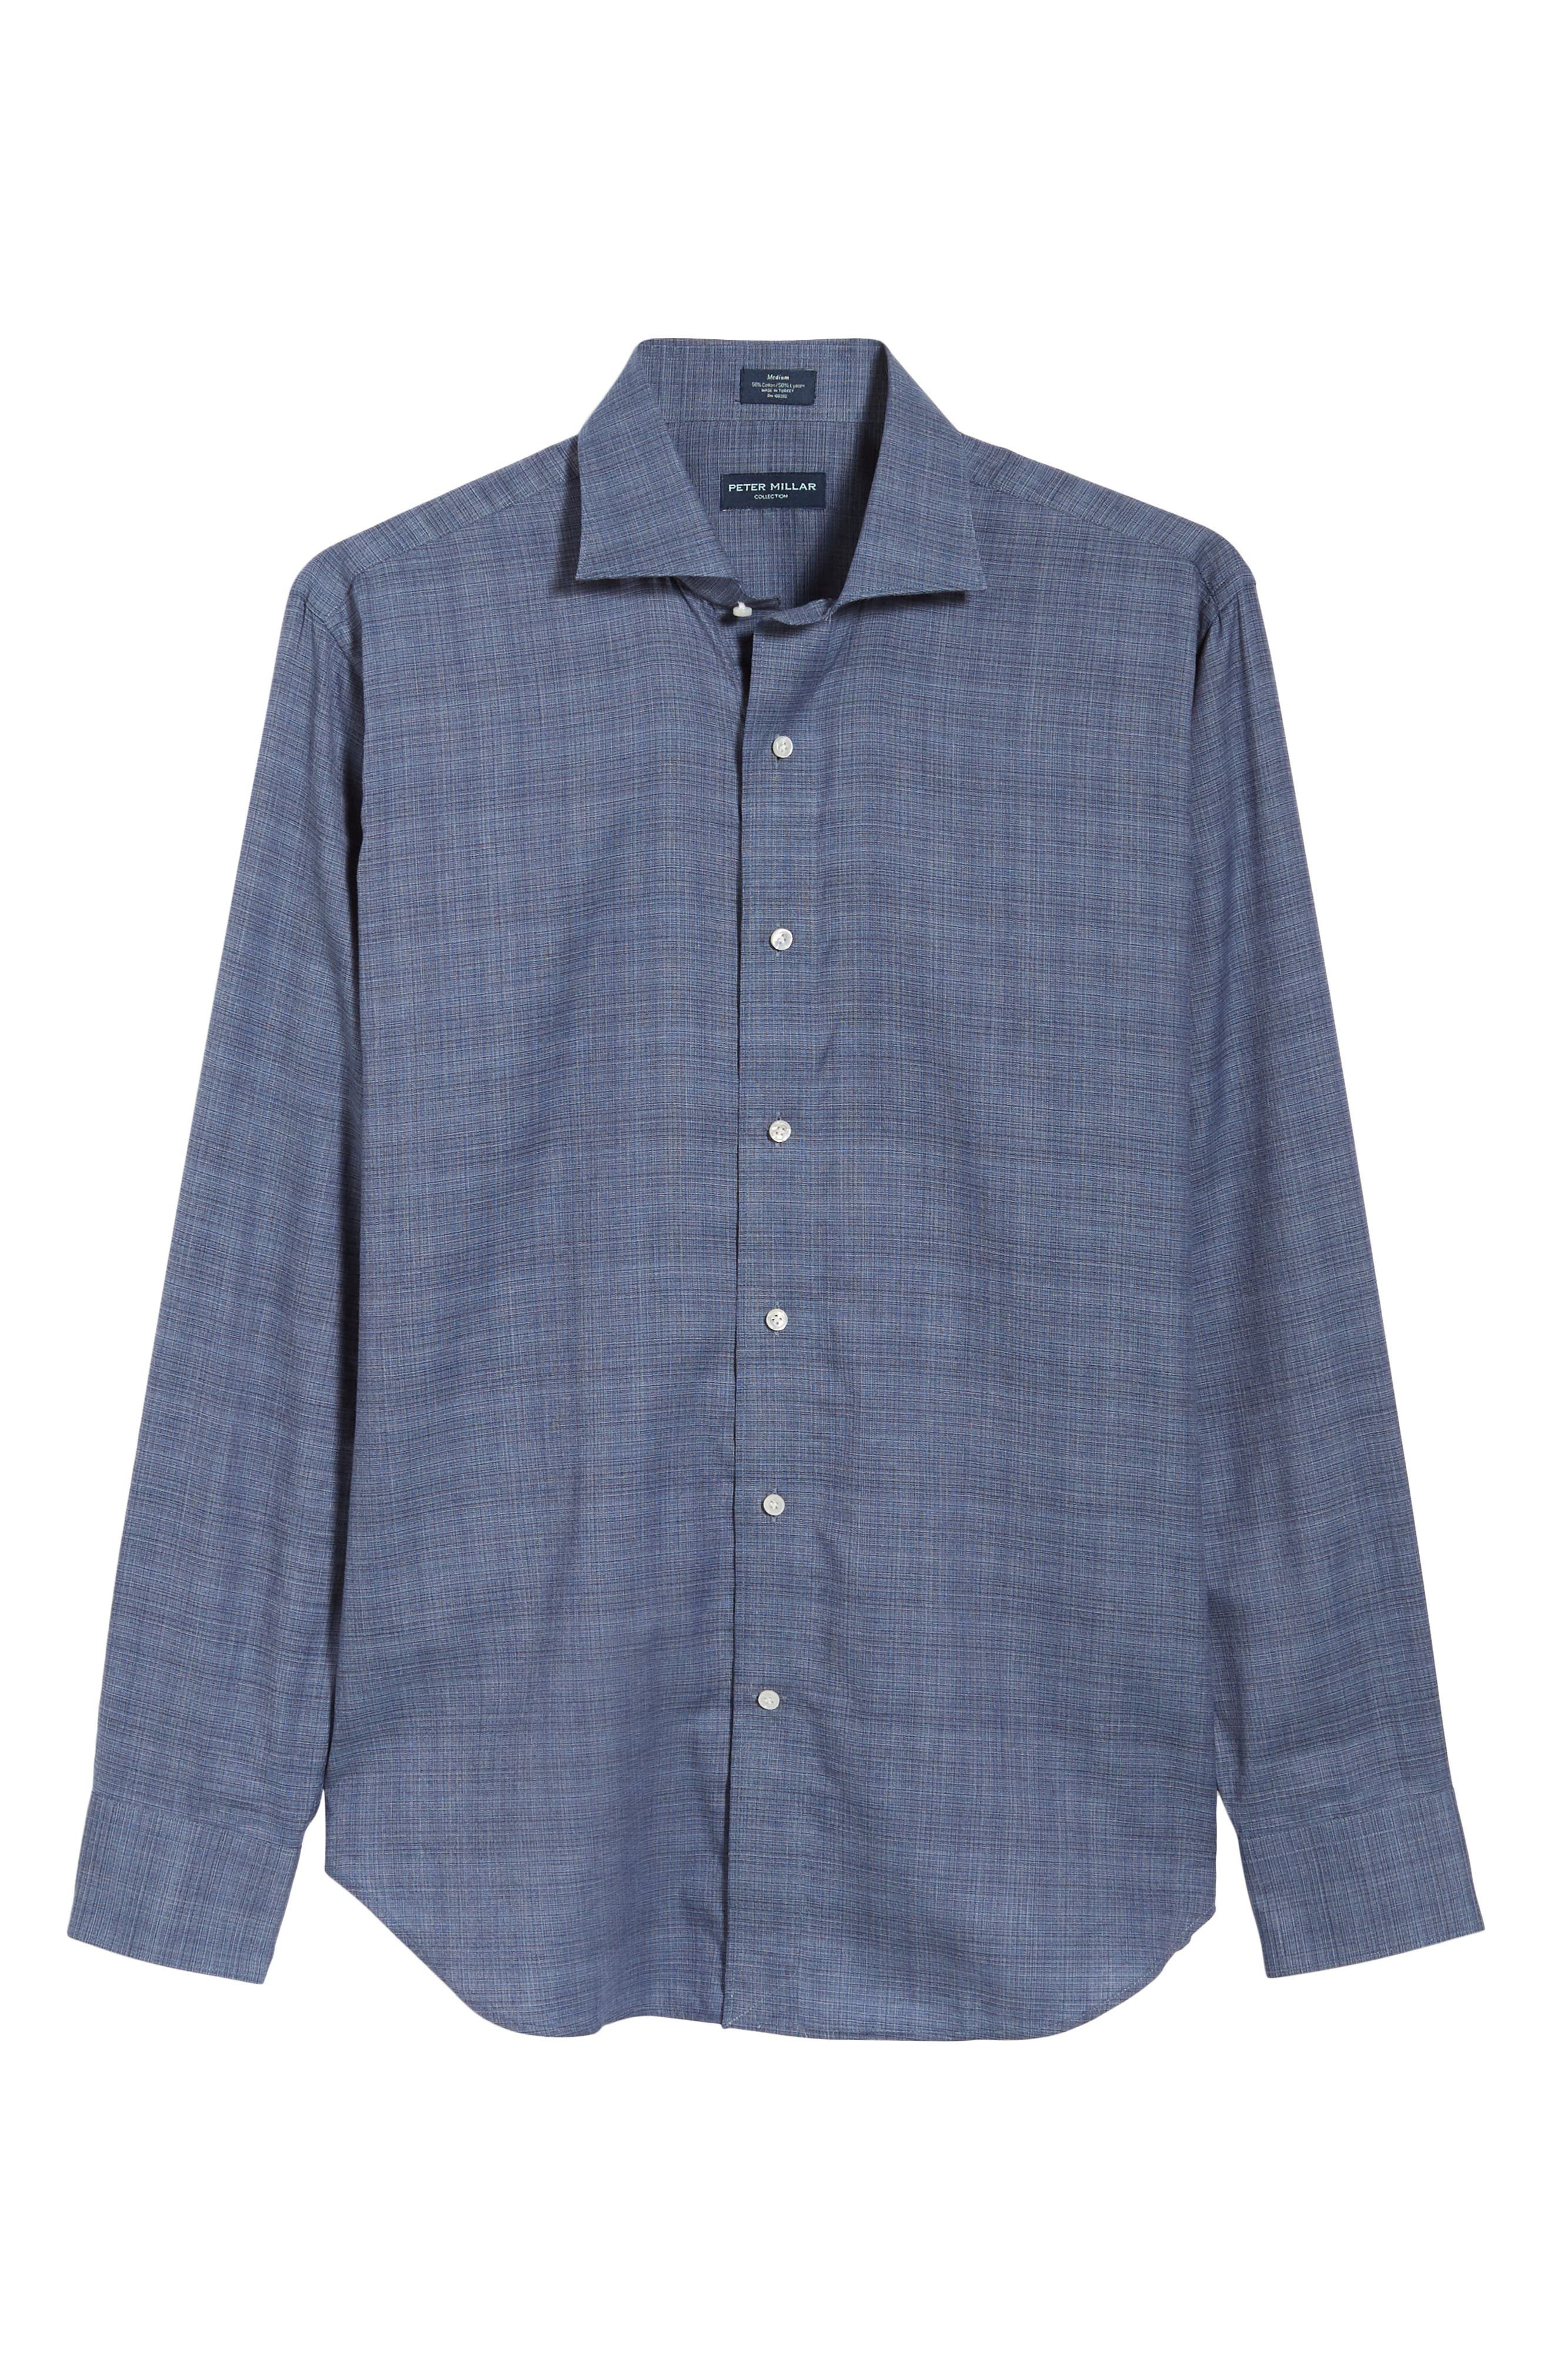 Starlight Regular Fit Chambray Sport Shirt,                             Alternate thumbnail 5, color,                             417